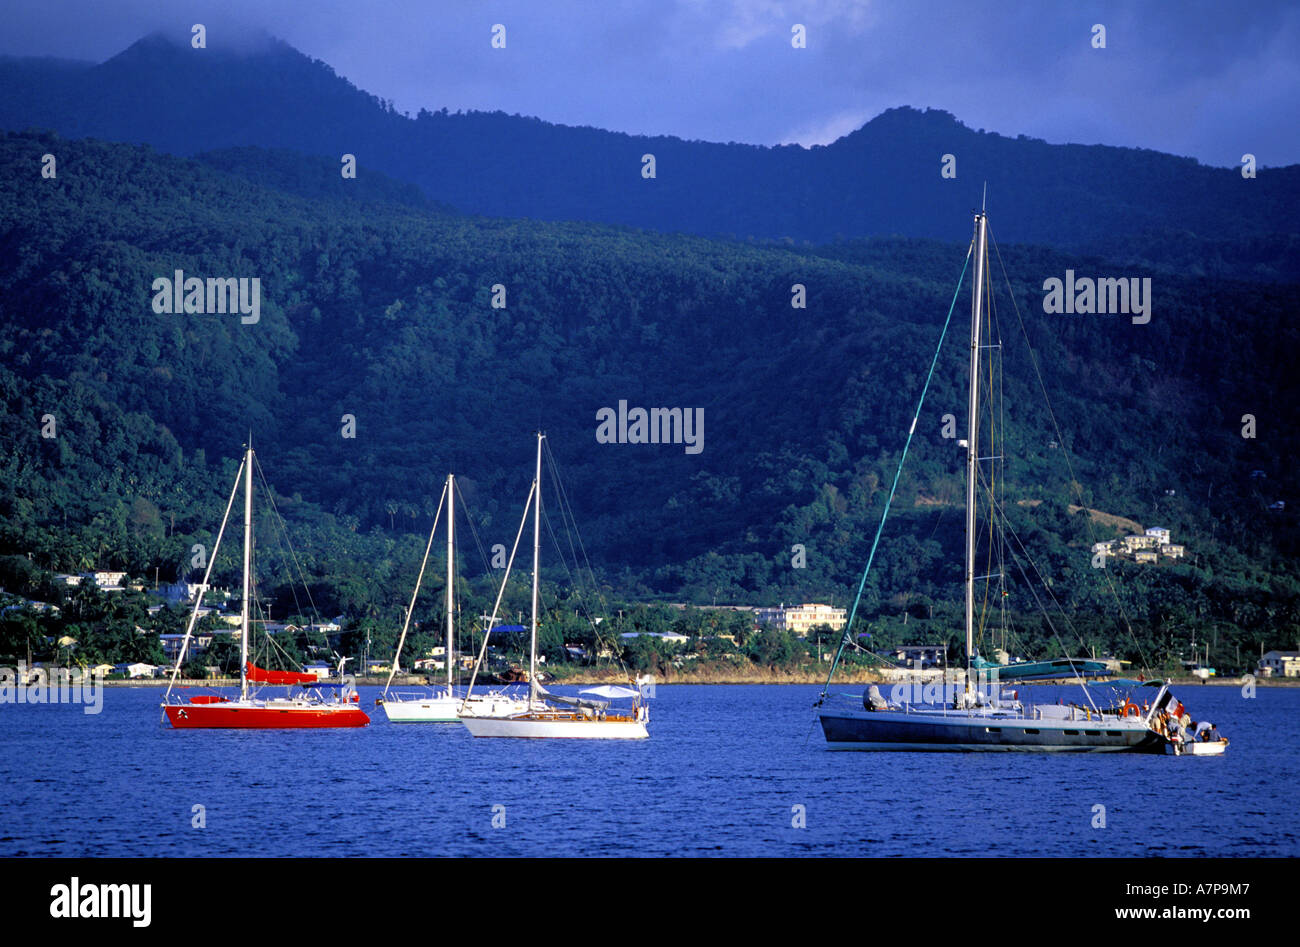 Dominica, Northern coast, West part, Porstmouth, famous bay where lots of yachts are at anchor Stock Photo